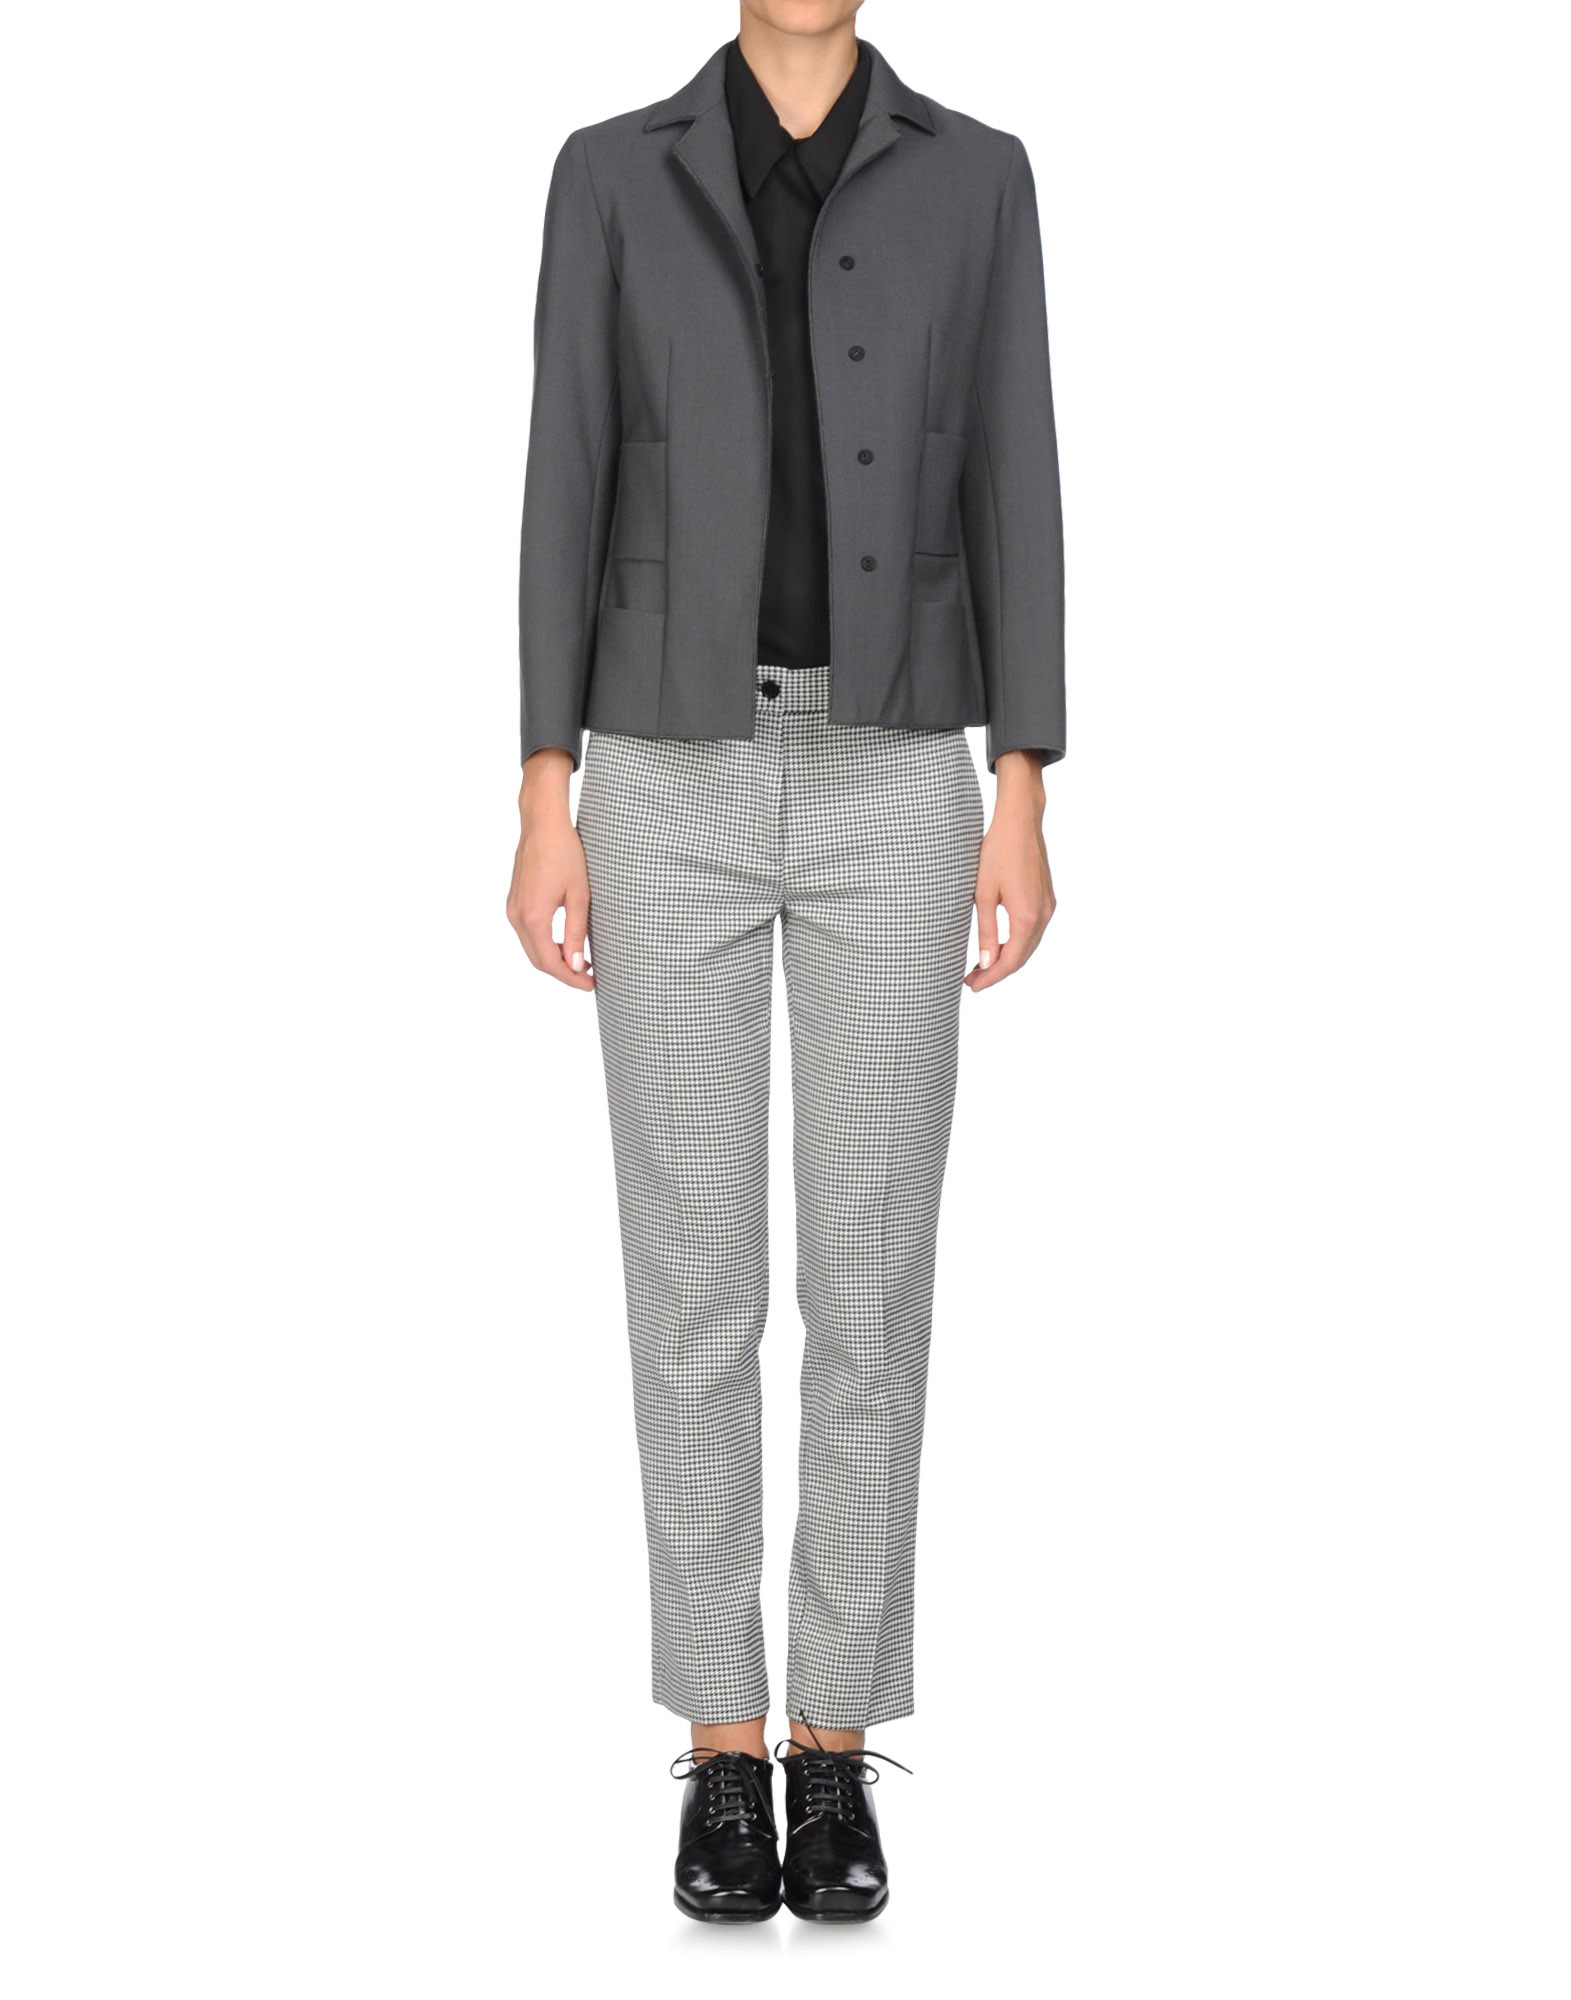 Tailored pants - JIL SANDER NAVY Online Store